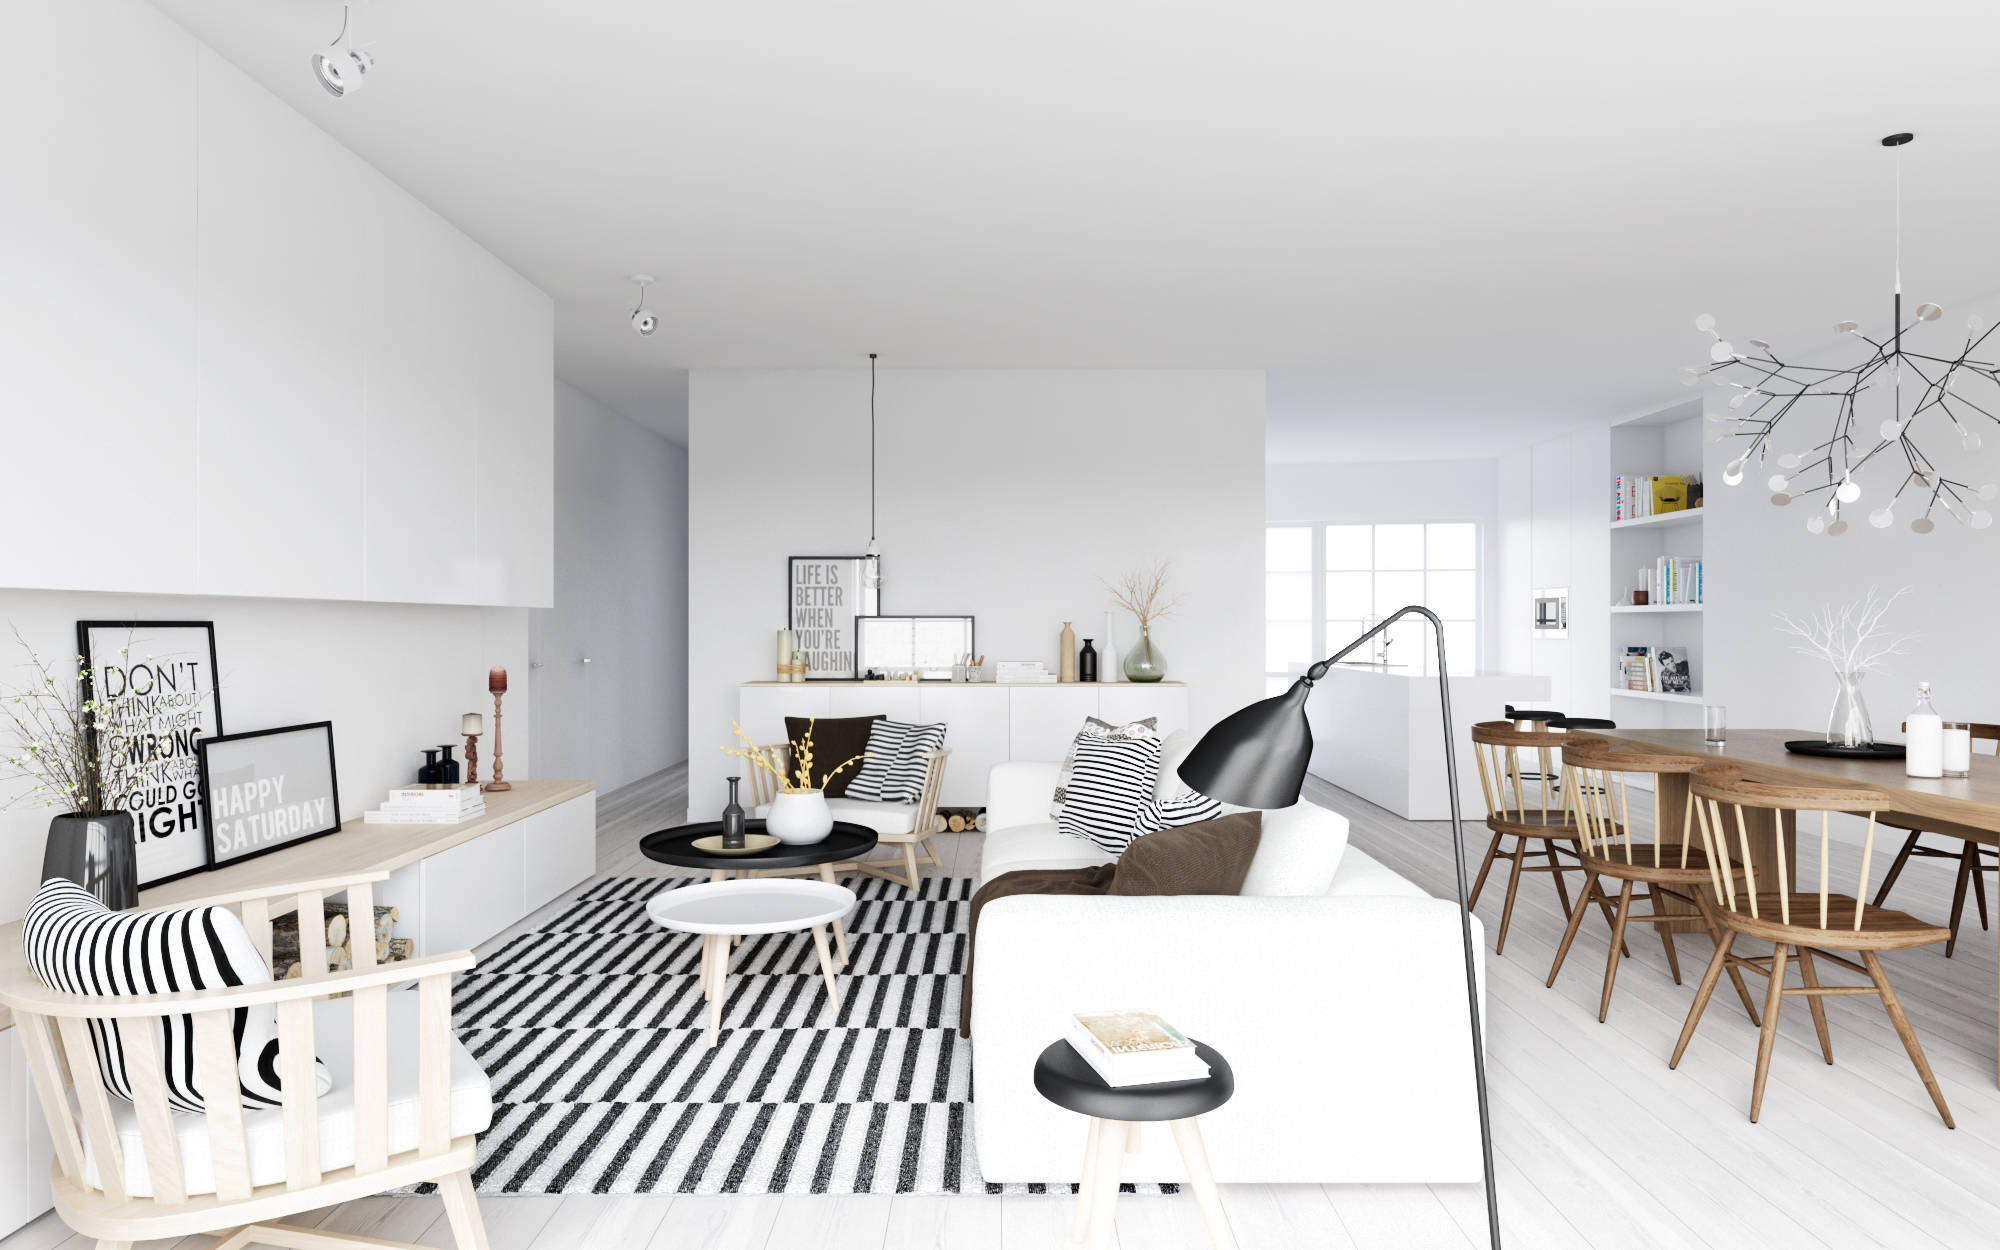 8. Use Of White And Neutrals